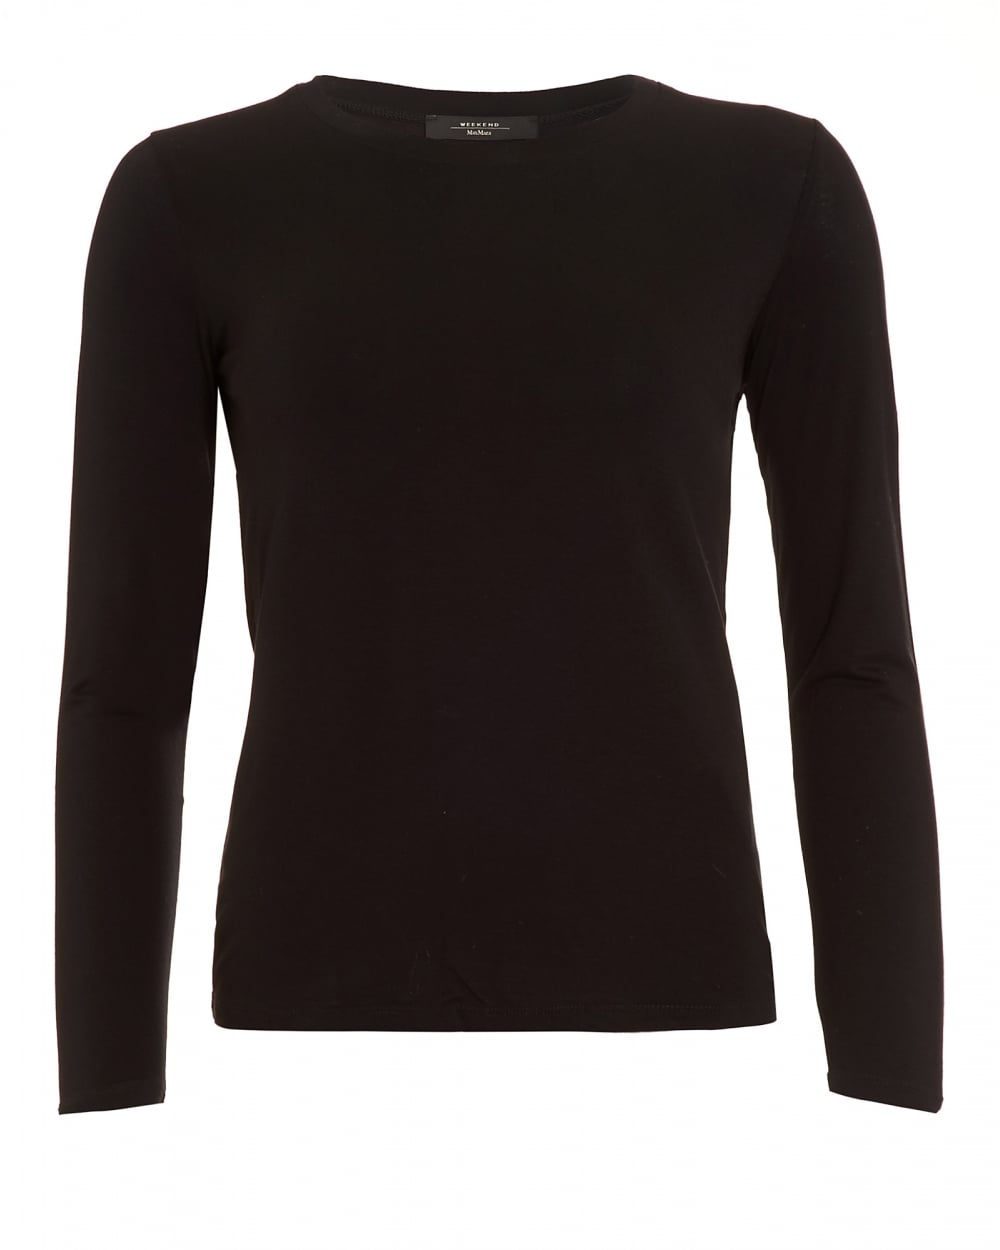 max mara weekend womens multi d top black long sleeve t shirt. Black Bedroom Furniture Sets. Home Design Ideas